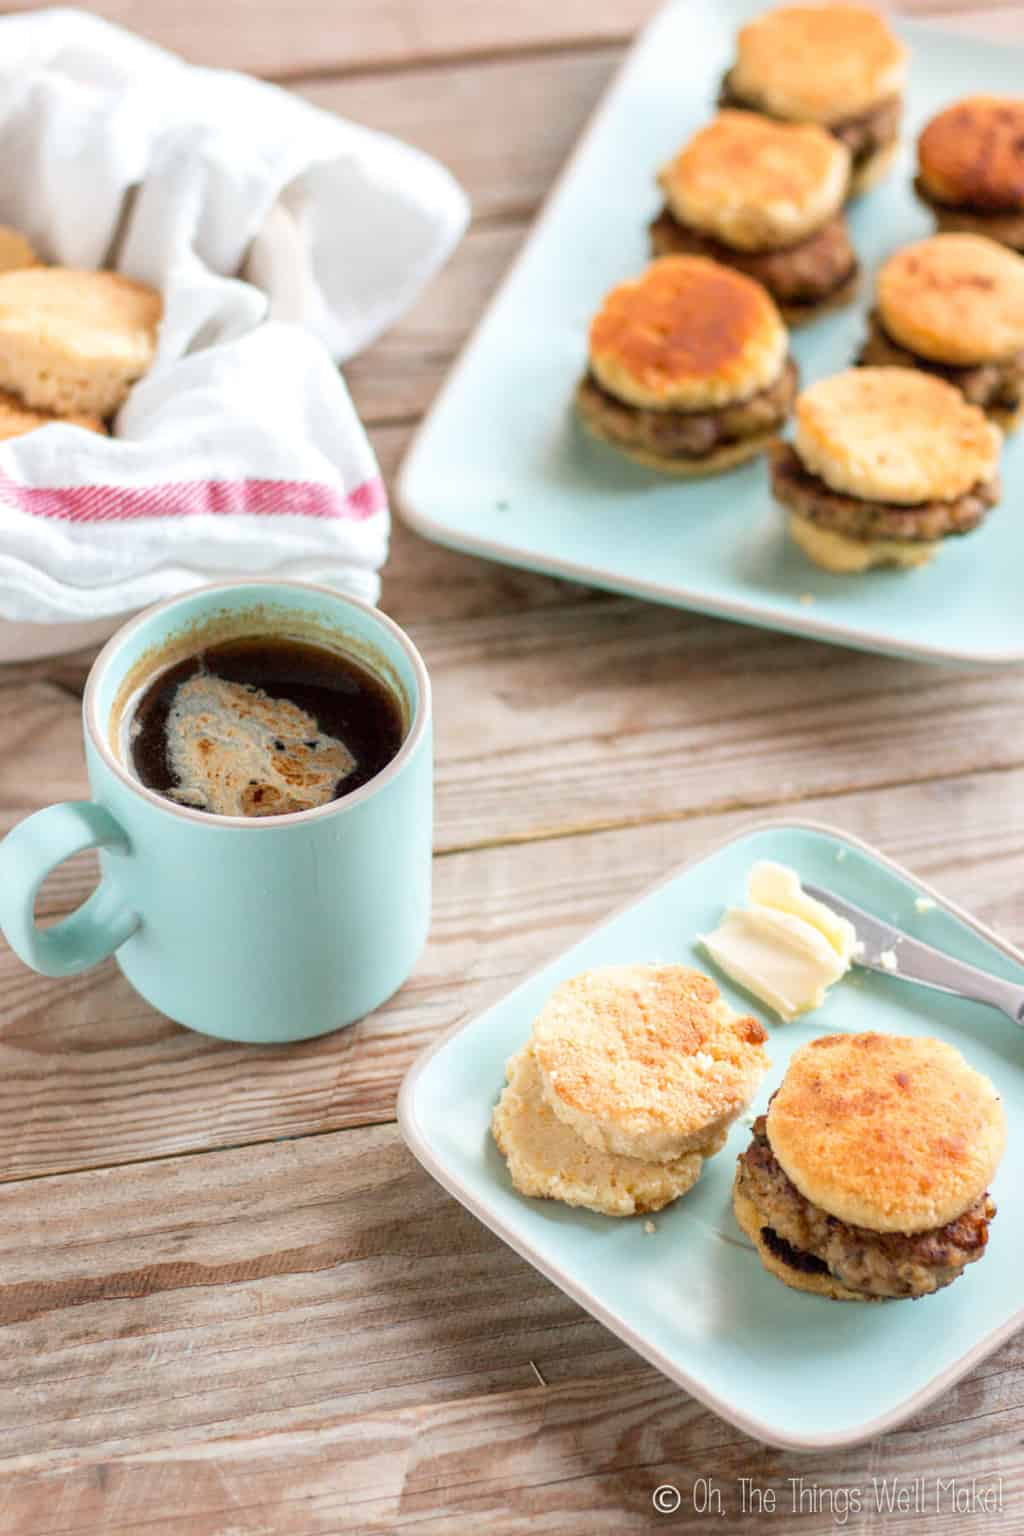 In the foreground, is a light blue square plate with one sausage biscuit and a couple of biscuit pieces next to a knife with butter. A cup of coffee is placed beside it with a bowl of biscuits and another plate of sausage biscuits in the background.v